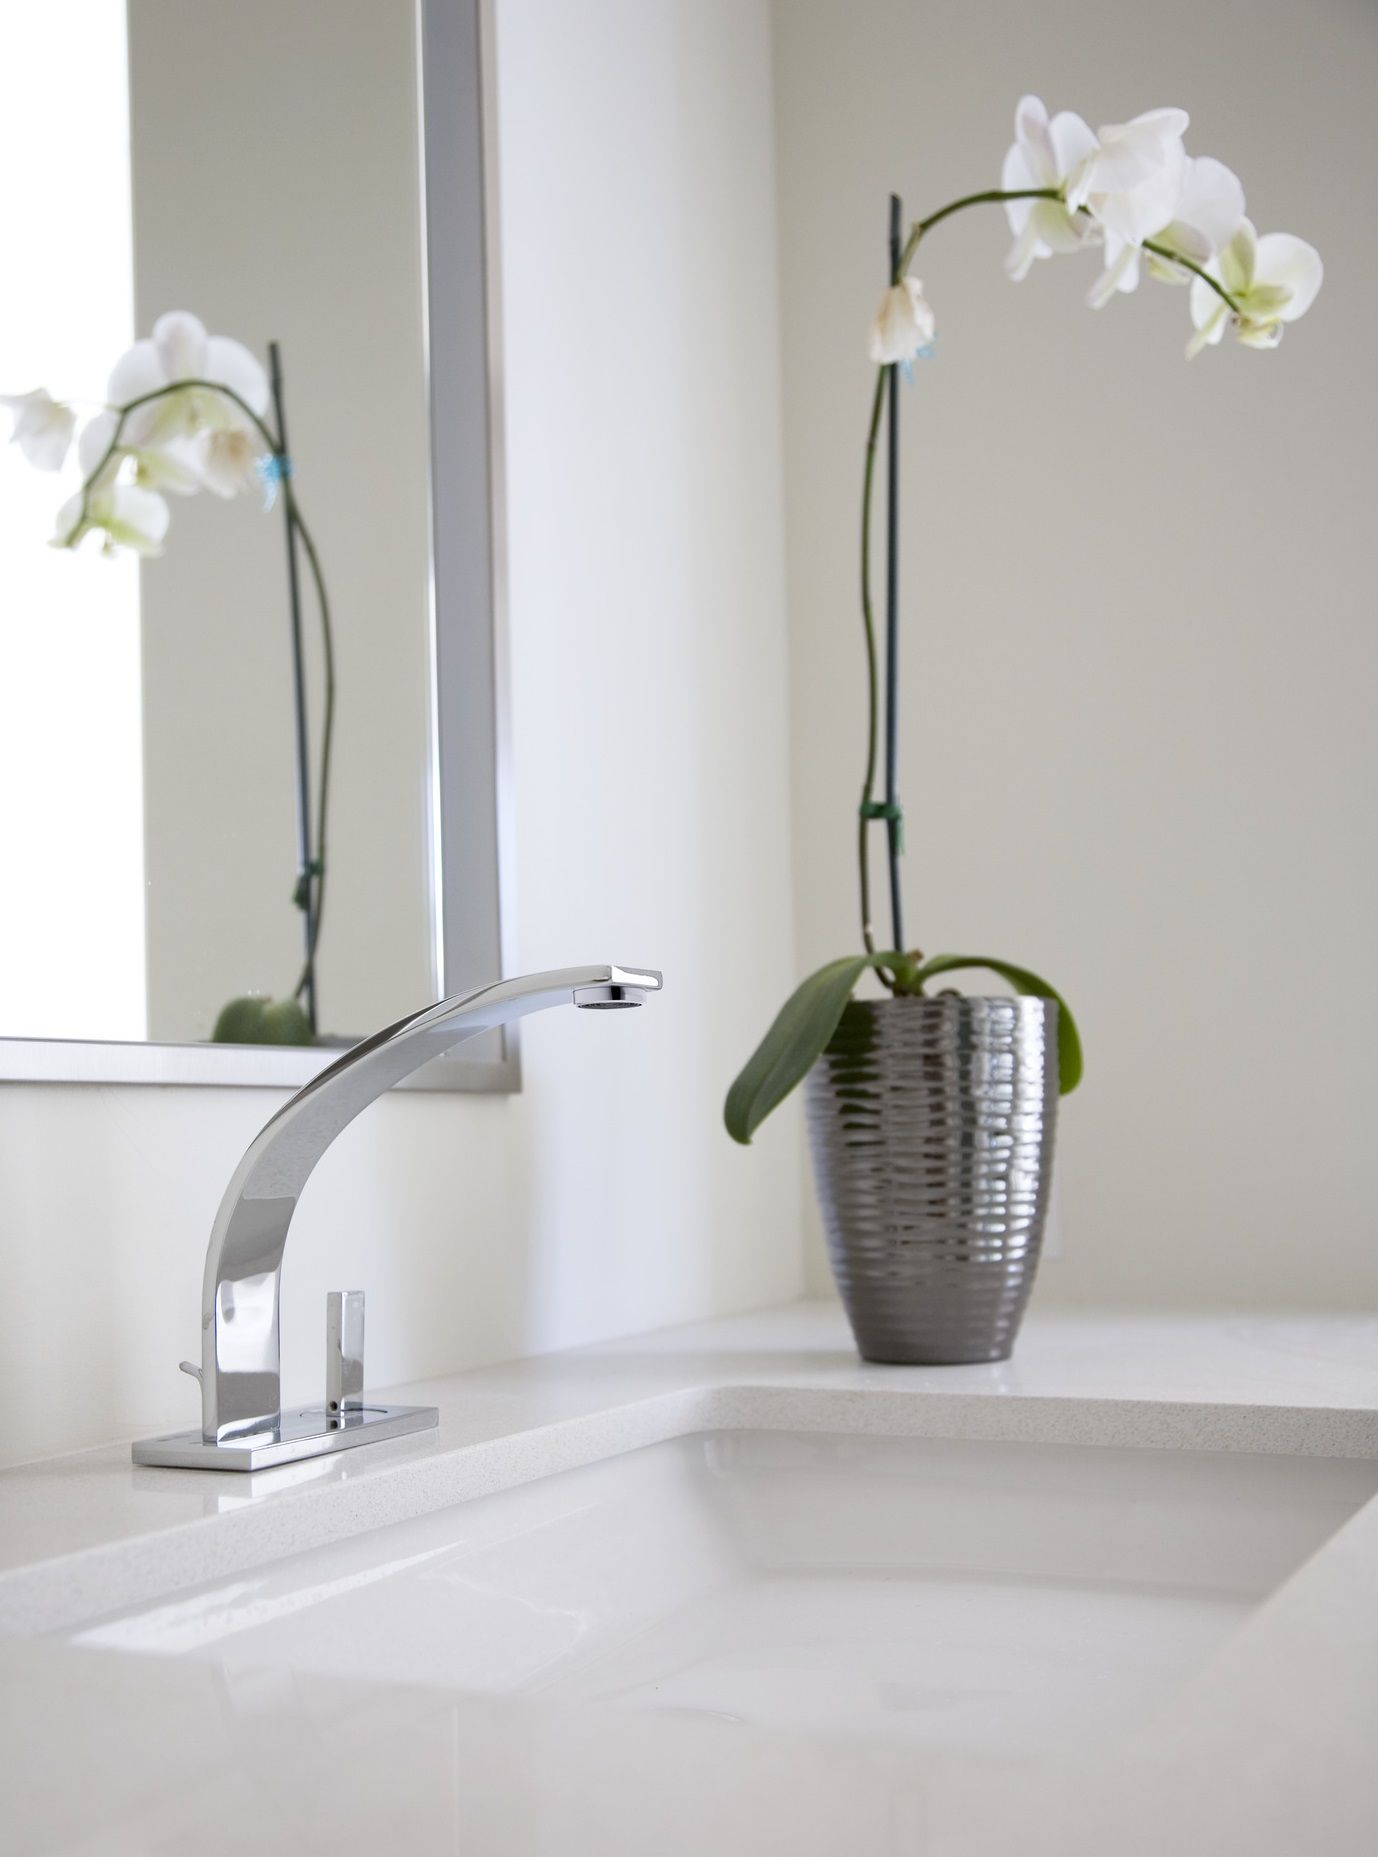 To create this exquisite piece, the ROHL Italian Wave Lavatory ...